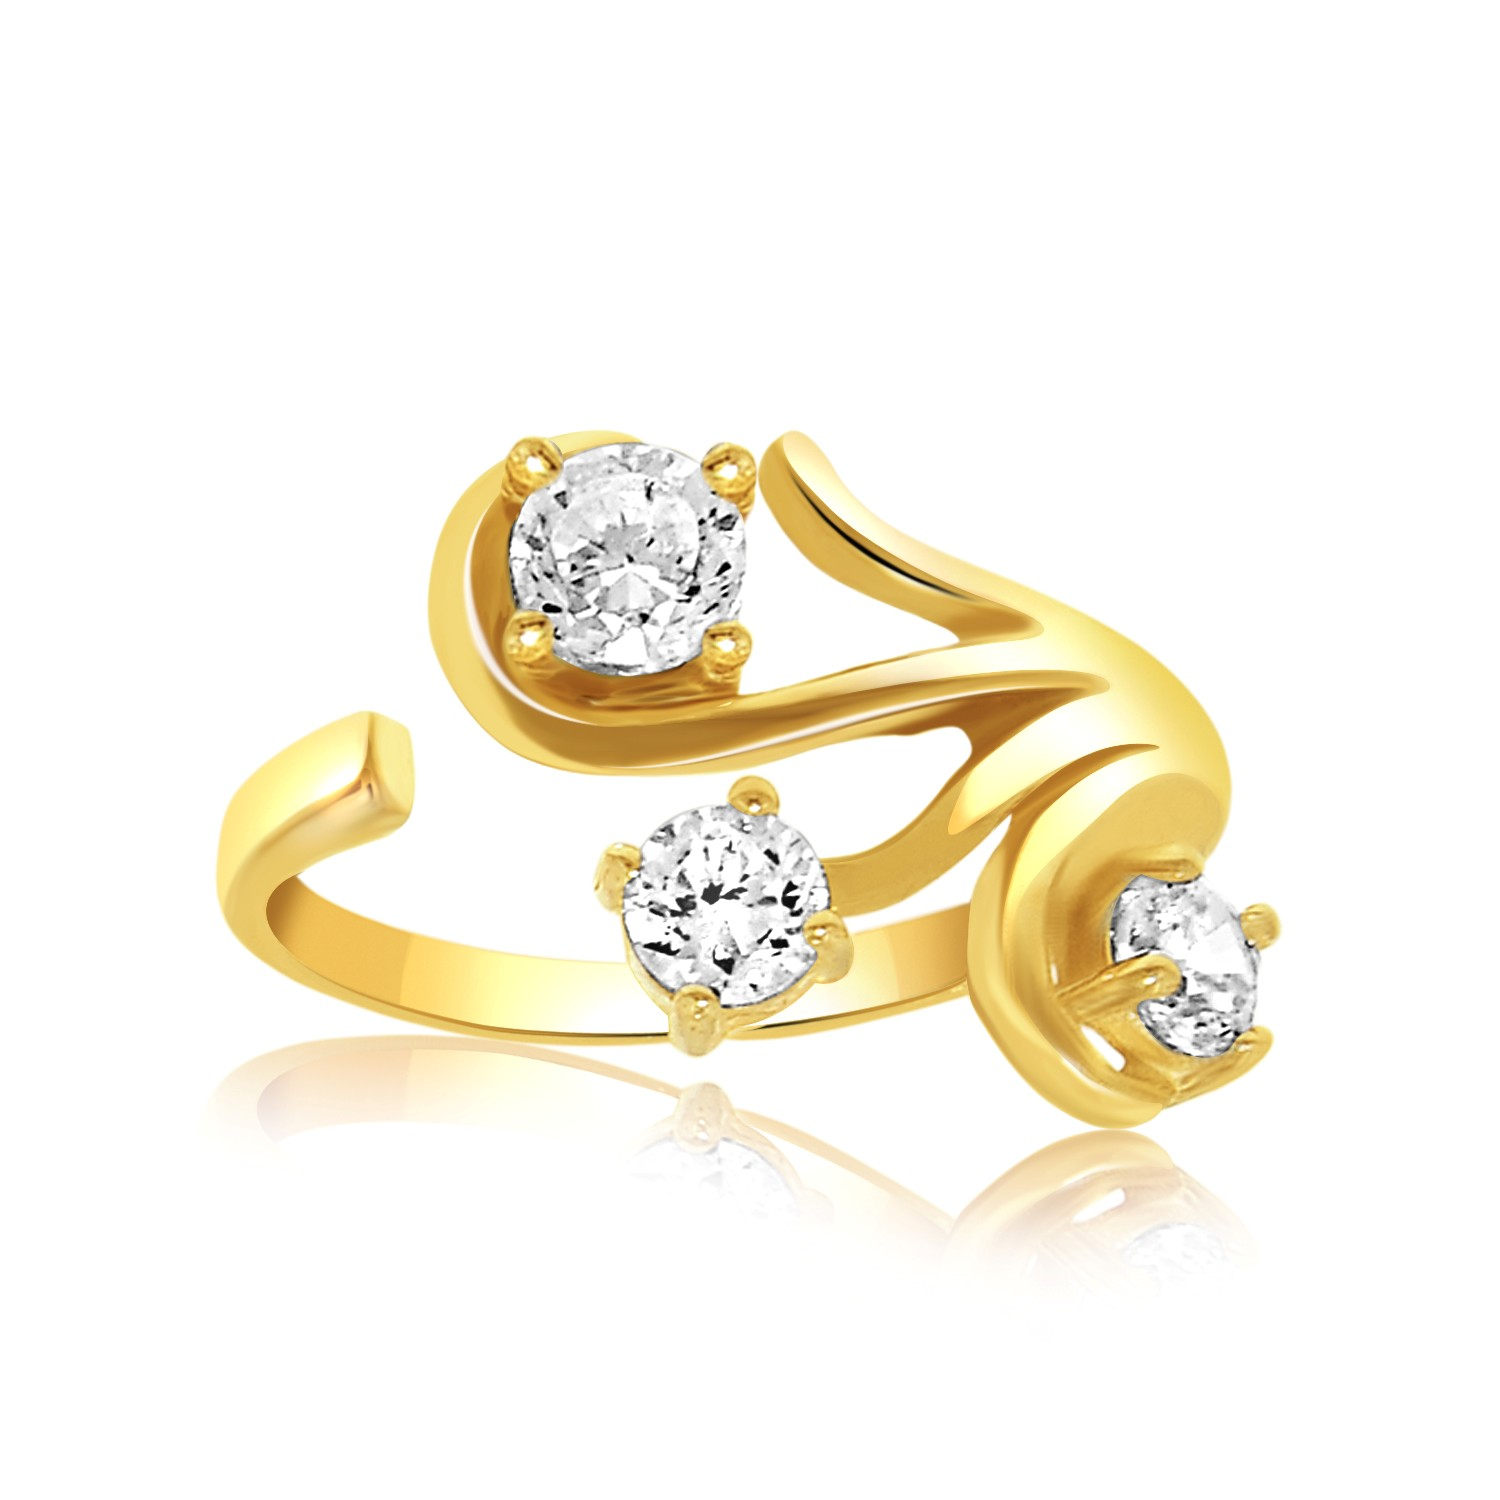 fancy toe ring with cubic zirconia accents in 14k